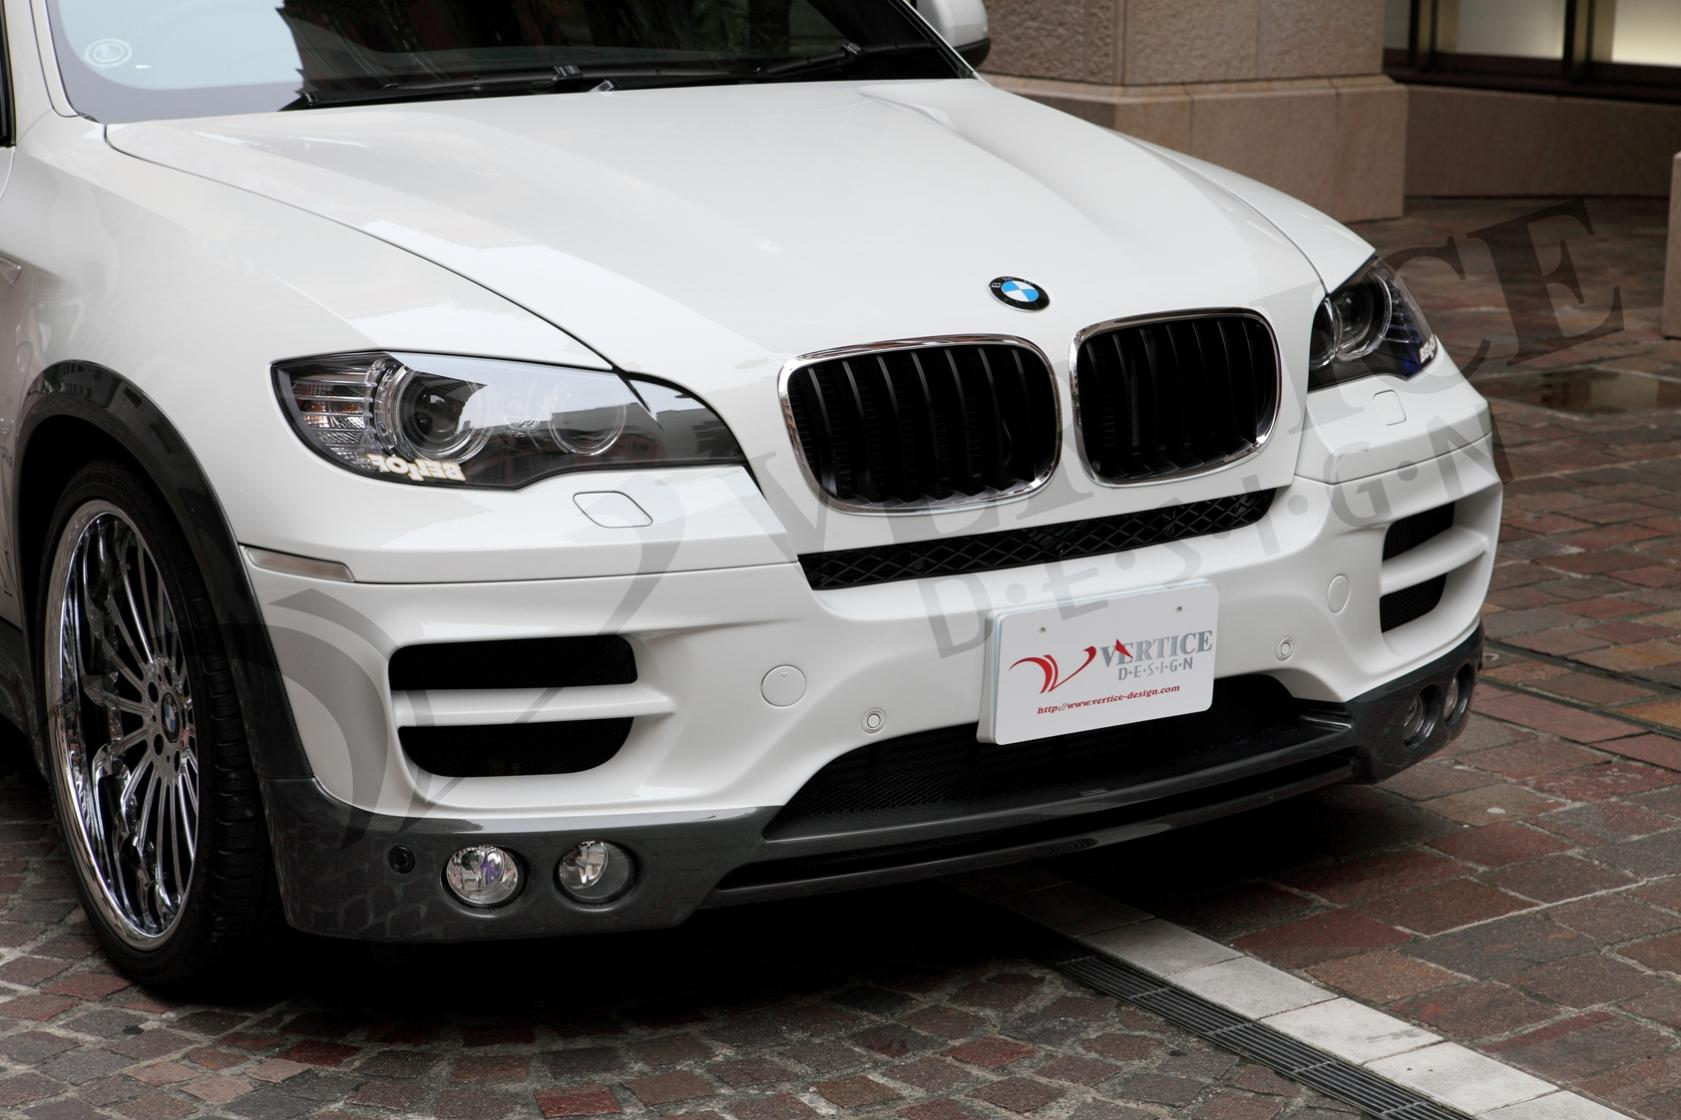 Vertice Bmw X6 Body Kit From Japan